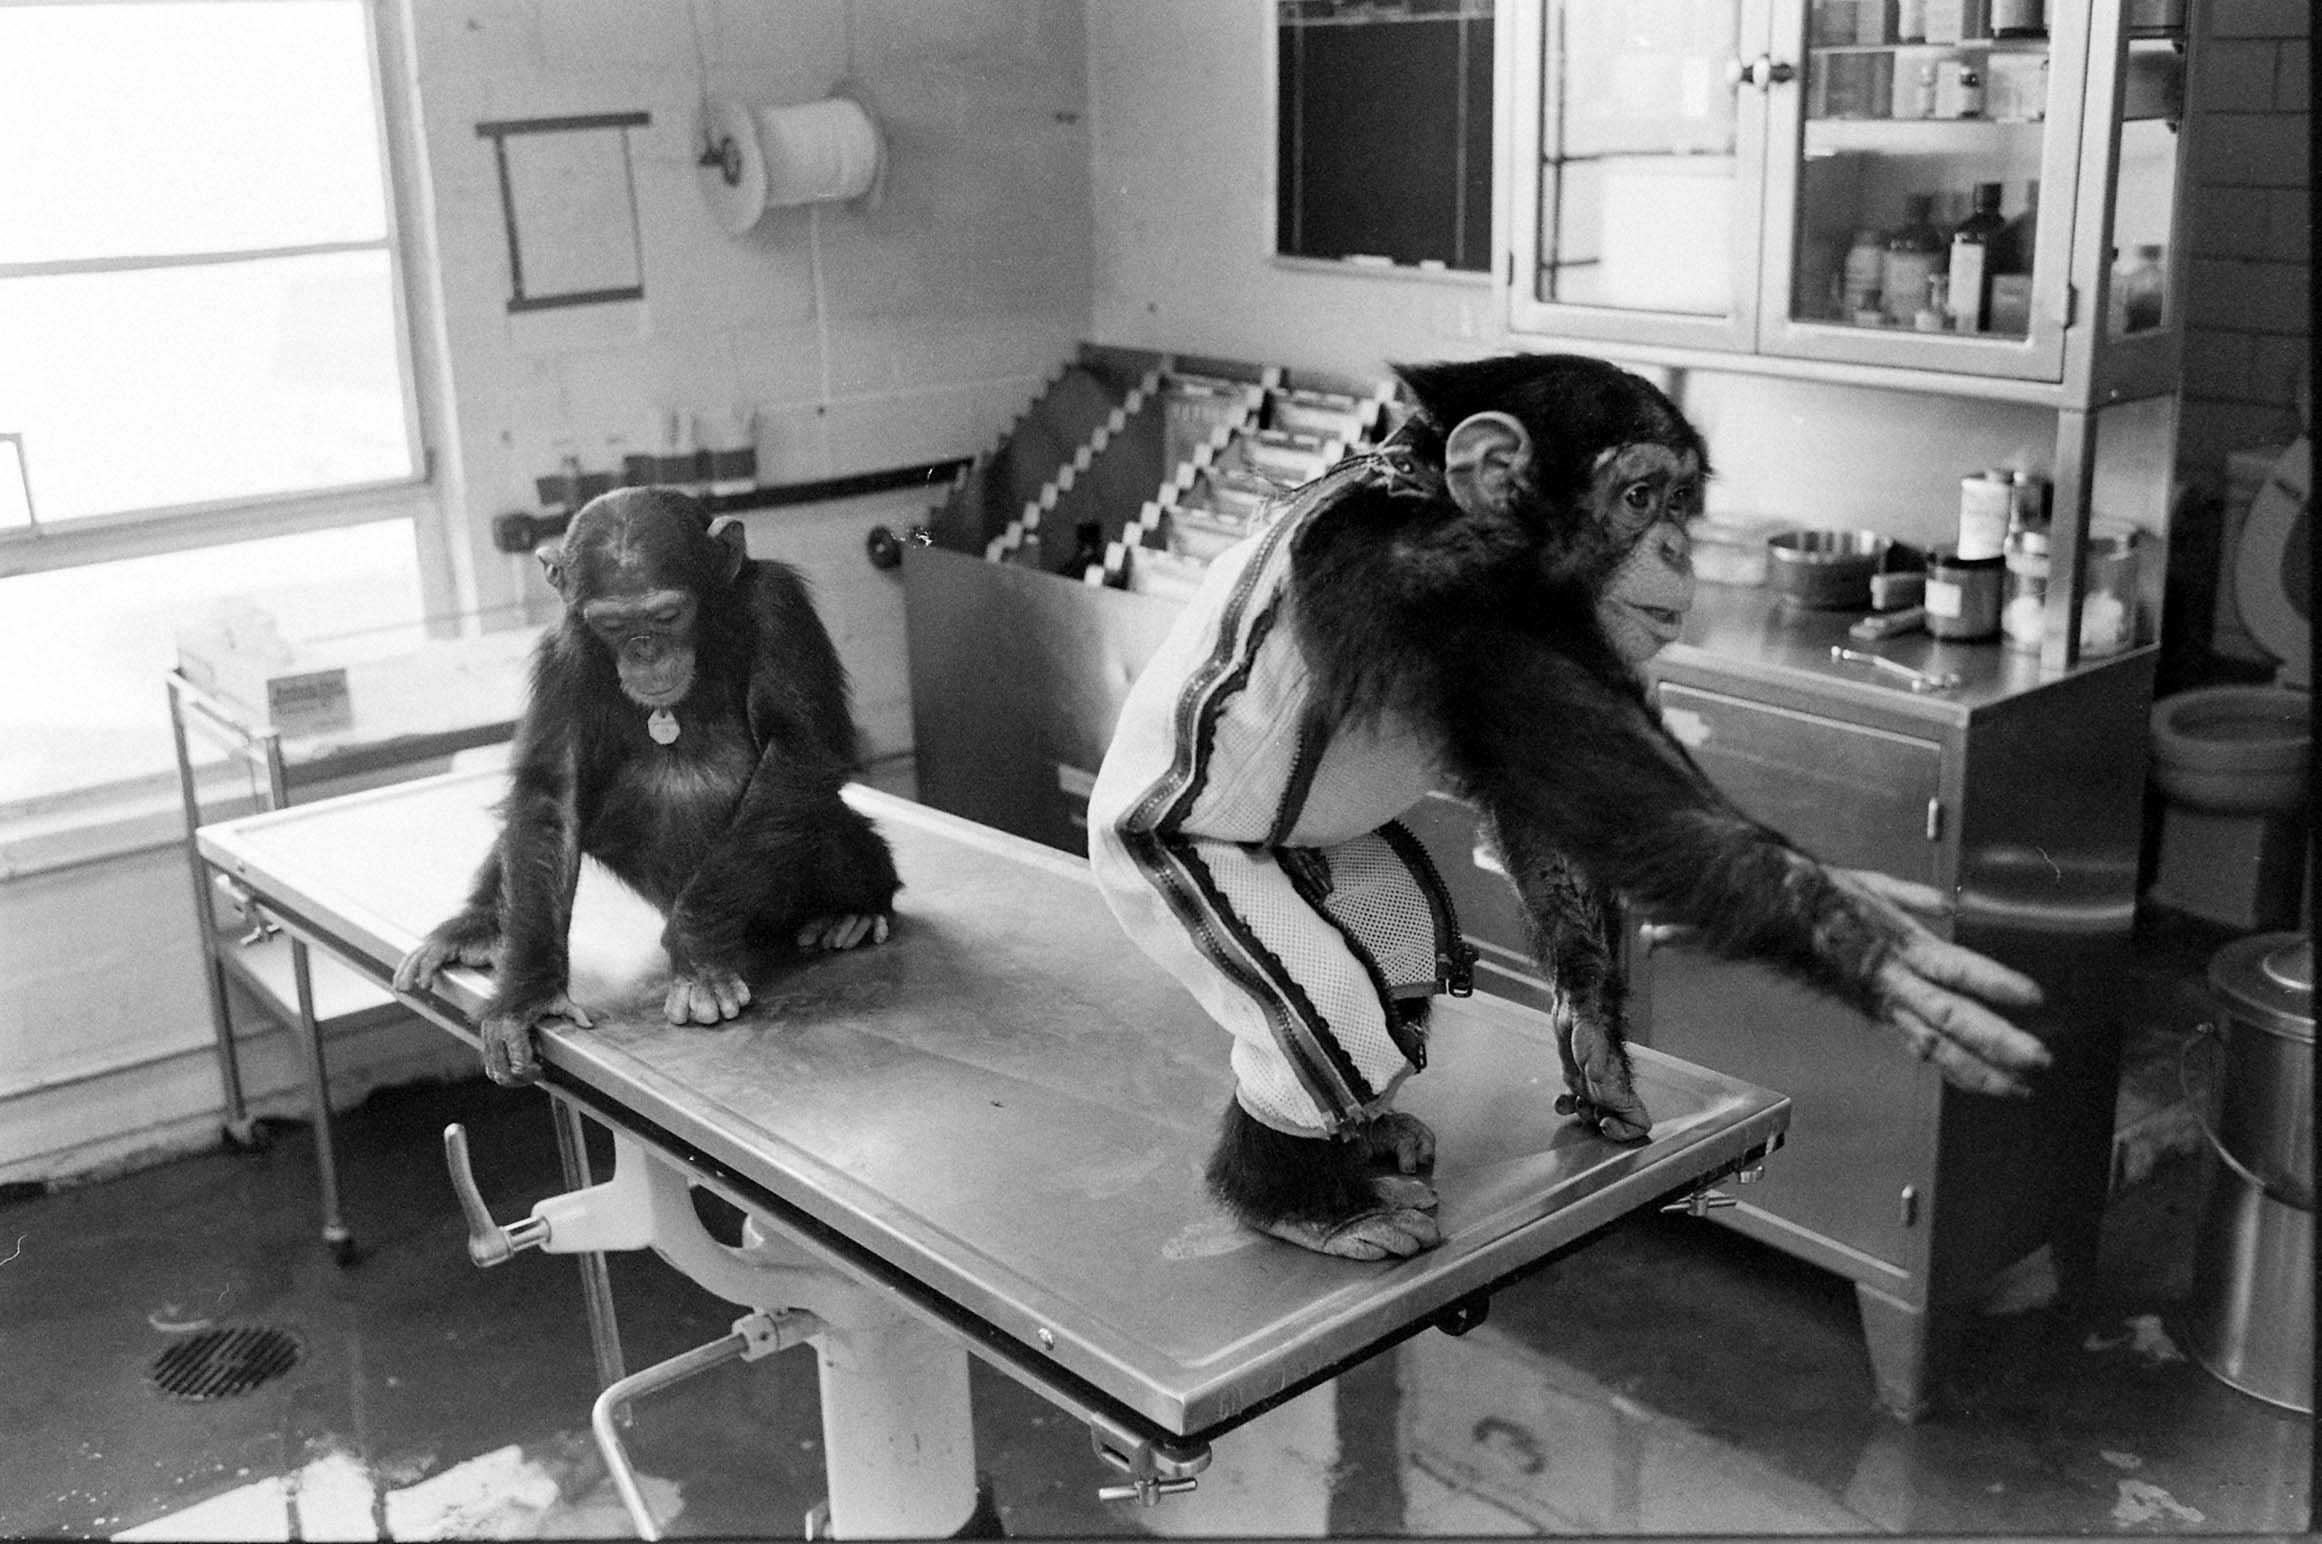 Not published in LIFE. Astrochimps in training, 1960.